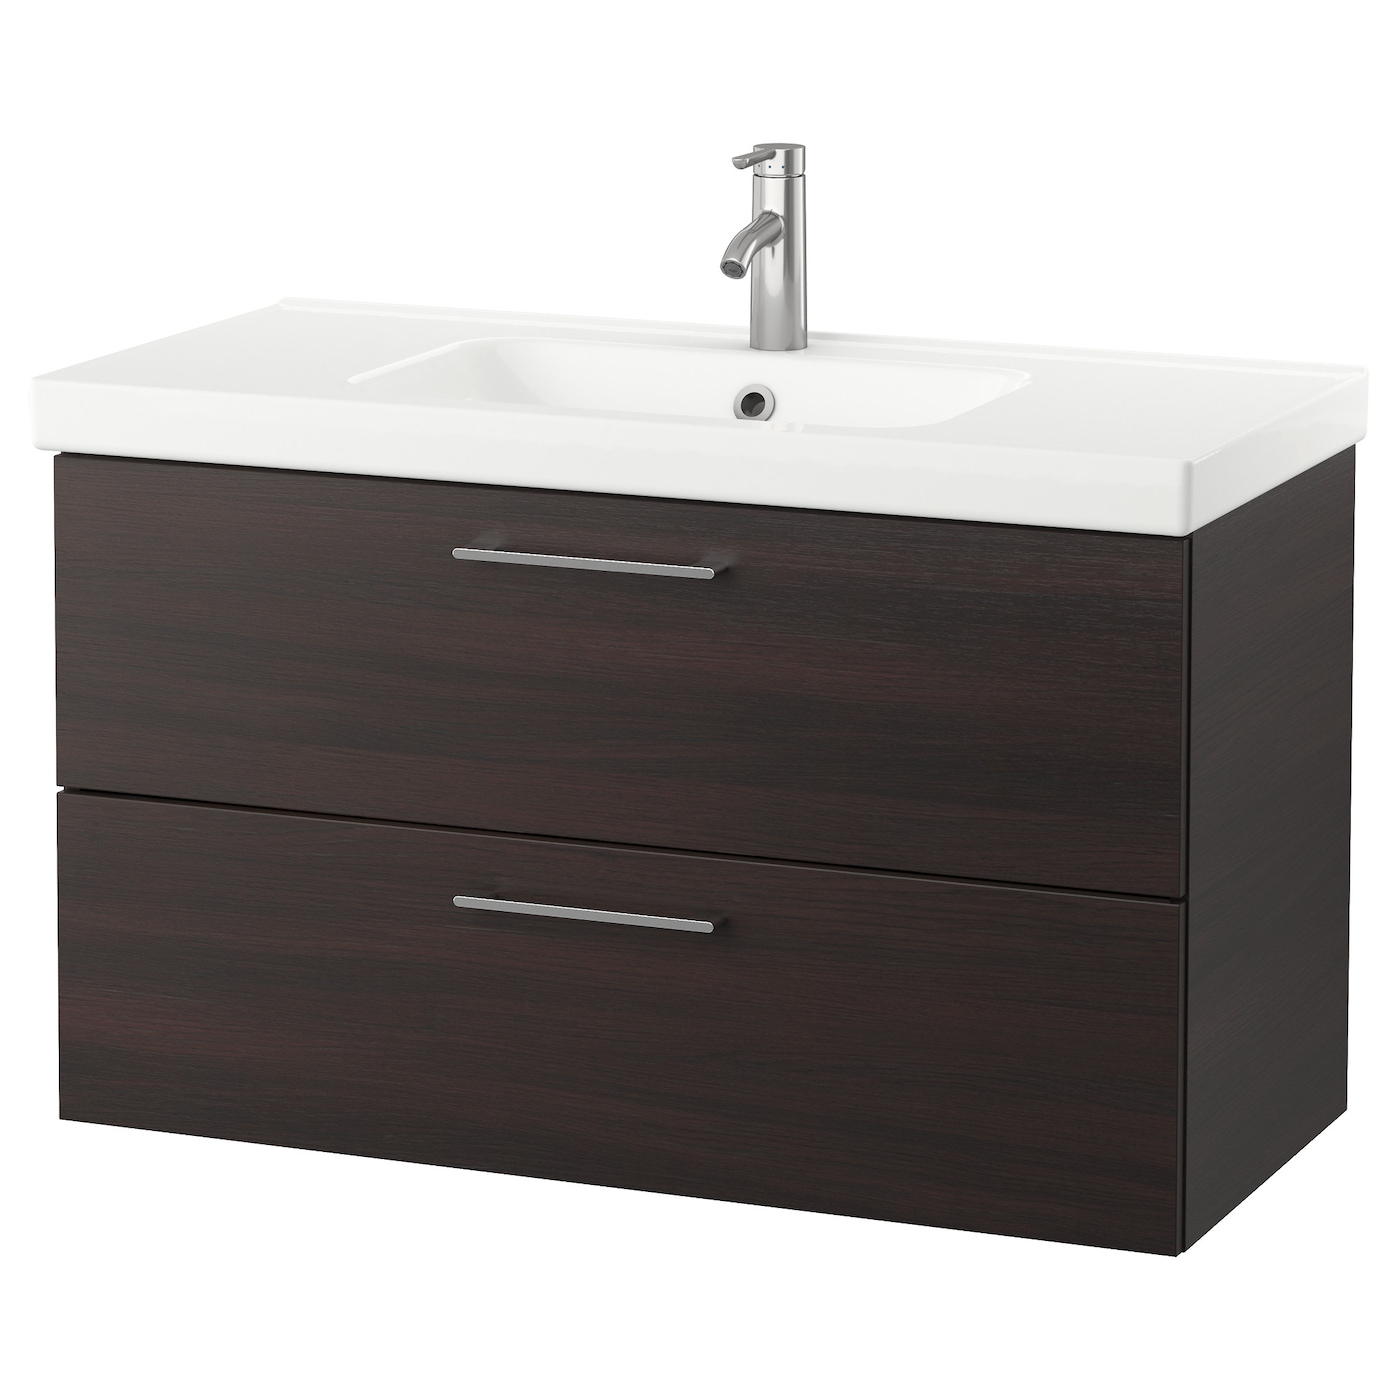 brown bathroom furniture. IKEA ODENSVIK/GODMORGON Wash-stand With 2 Drawers Brown Bathroom Furniture S